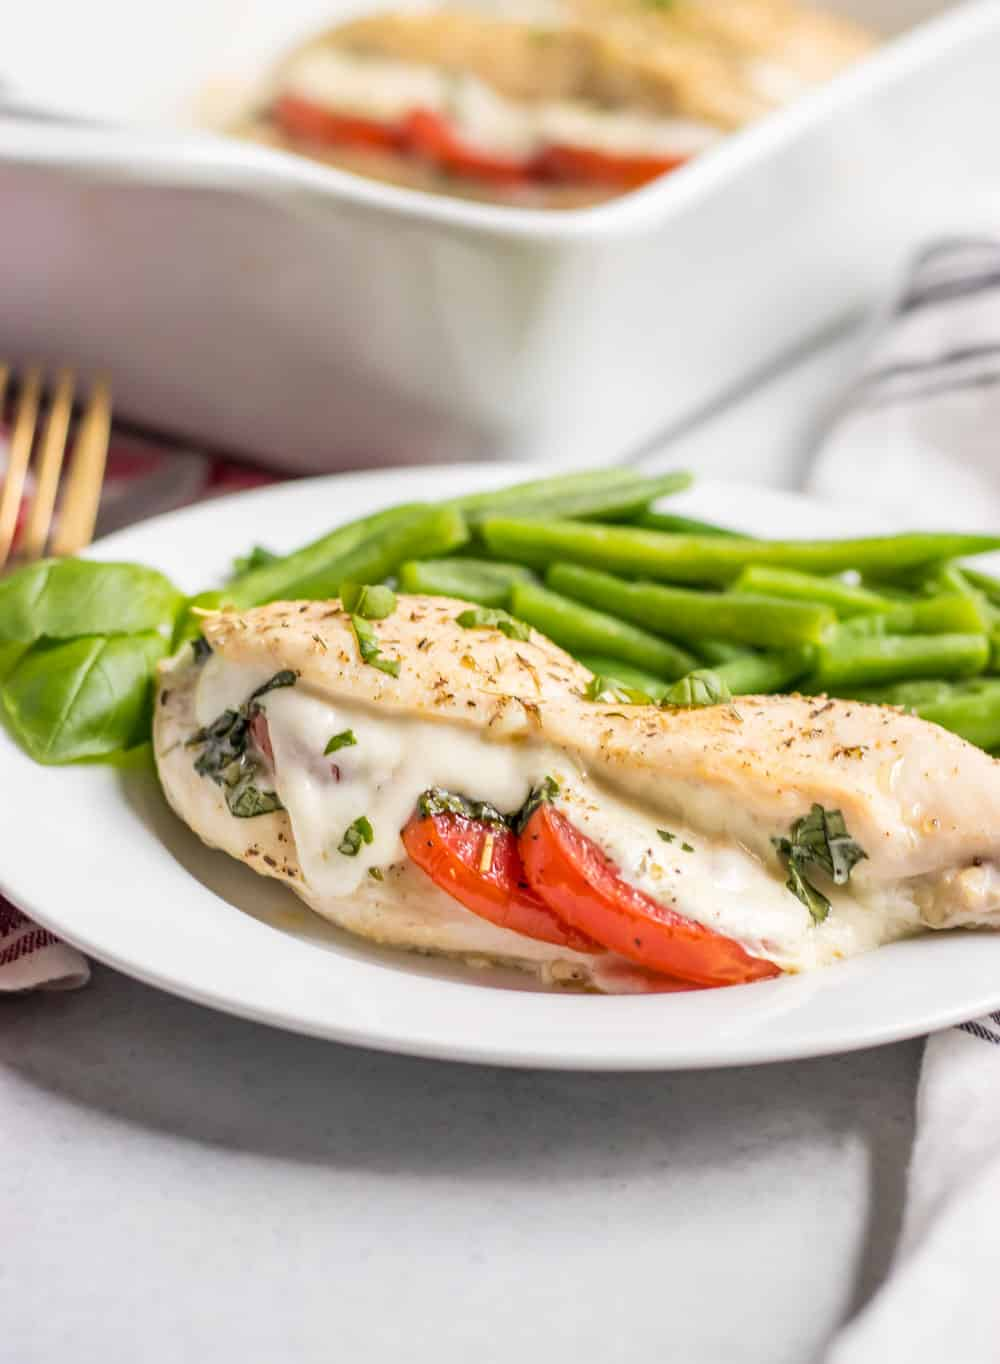 Mozzarella stuffed chicken on plate served with fresh green beans.